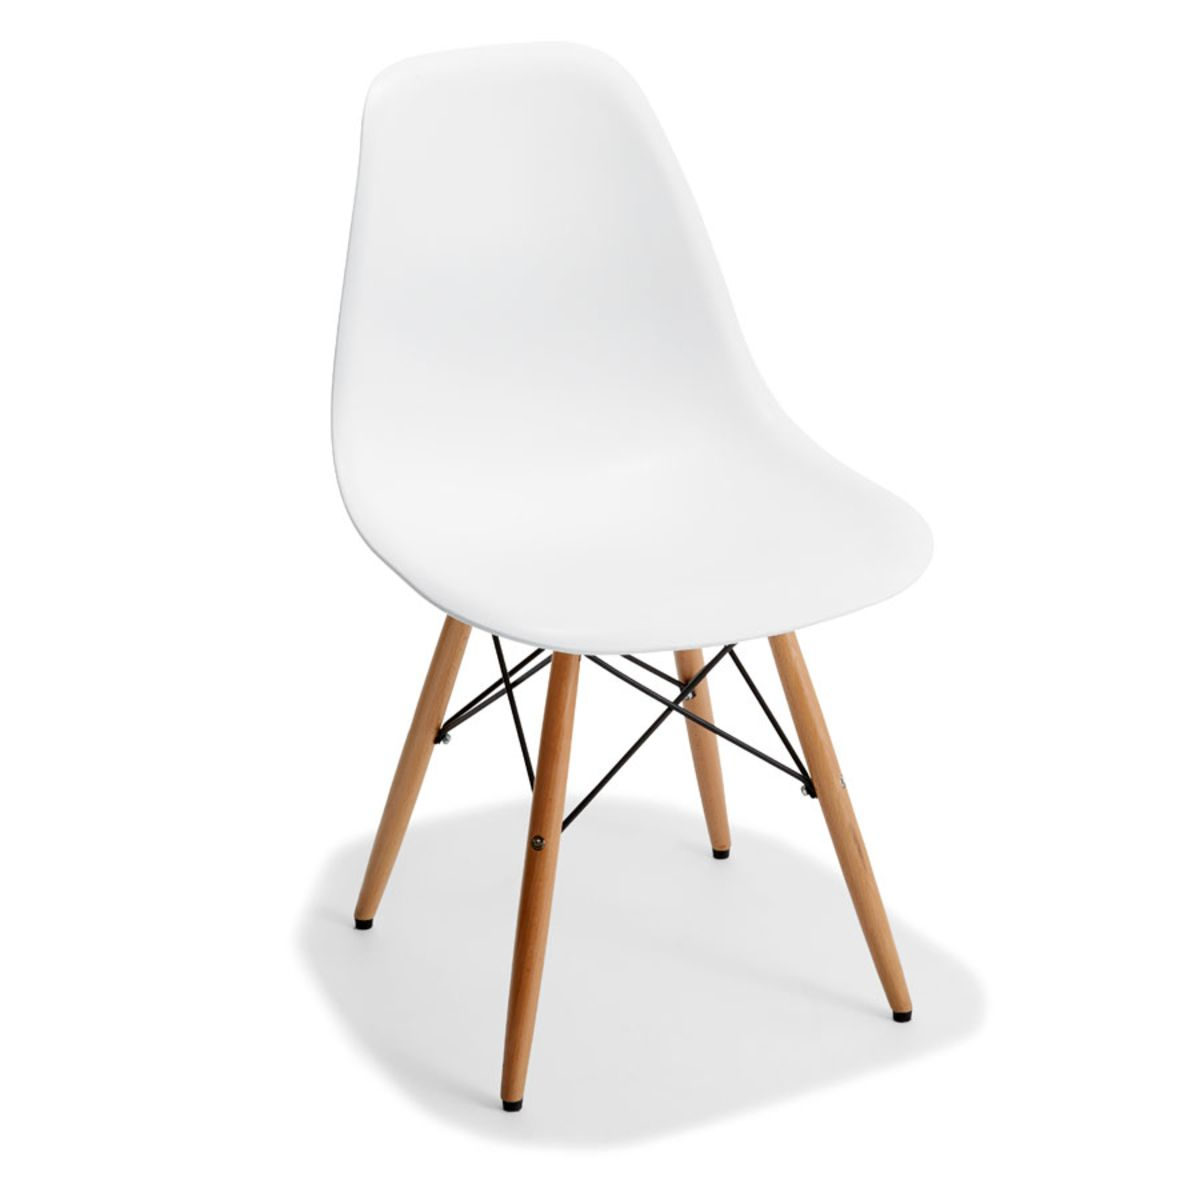 Dining Chair - White  Kmart  White dining chairs, Dining chairs